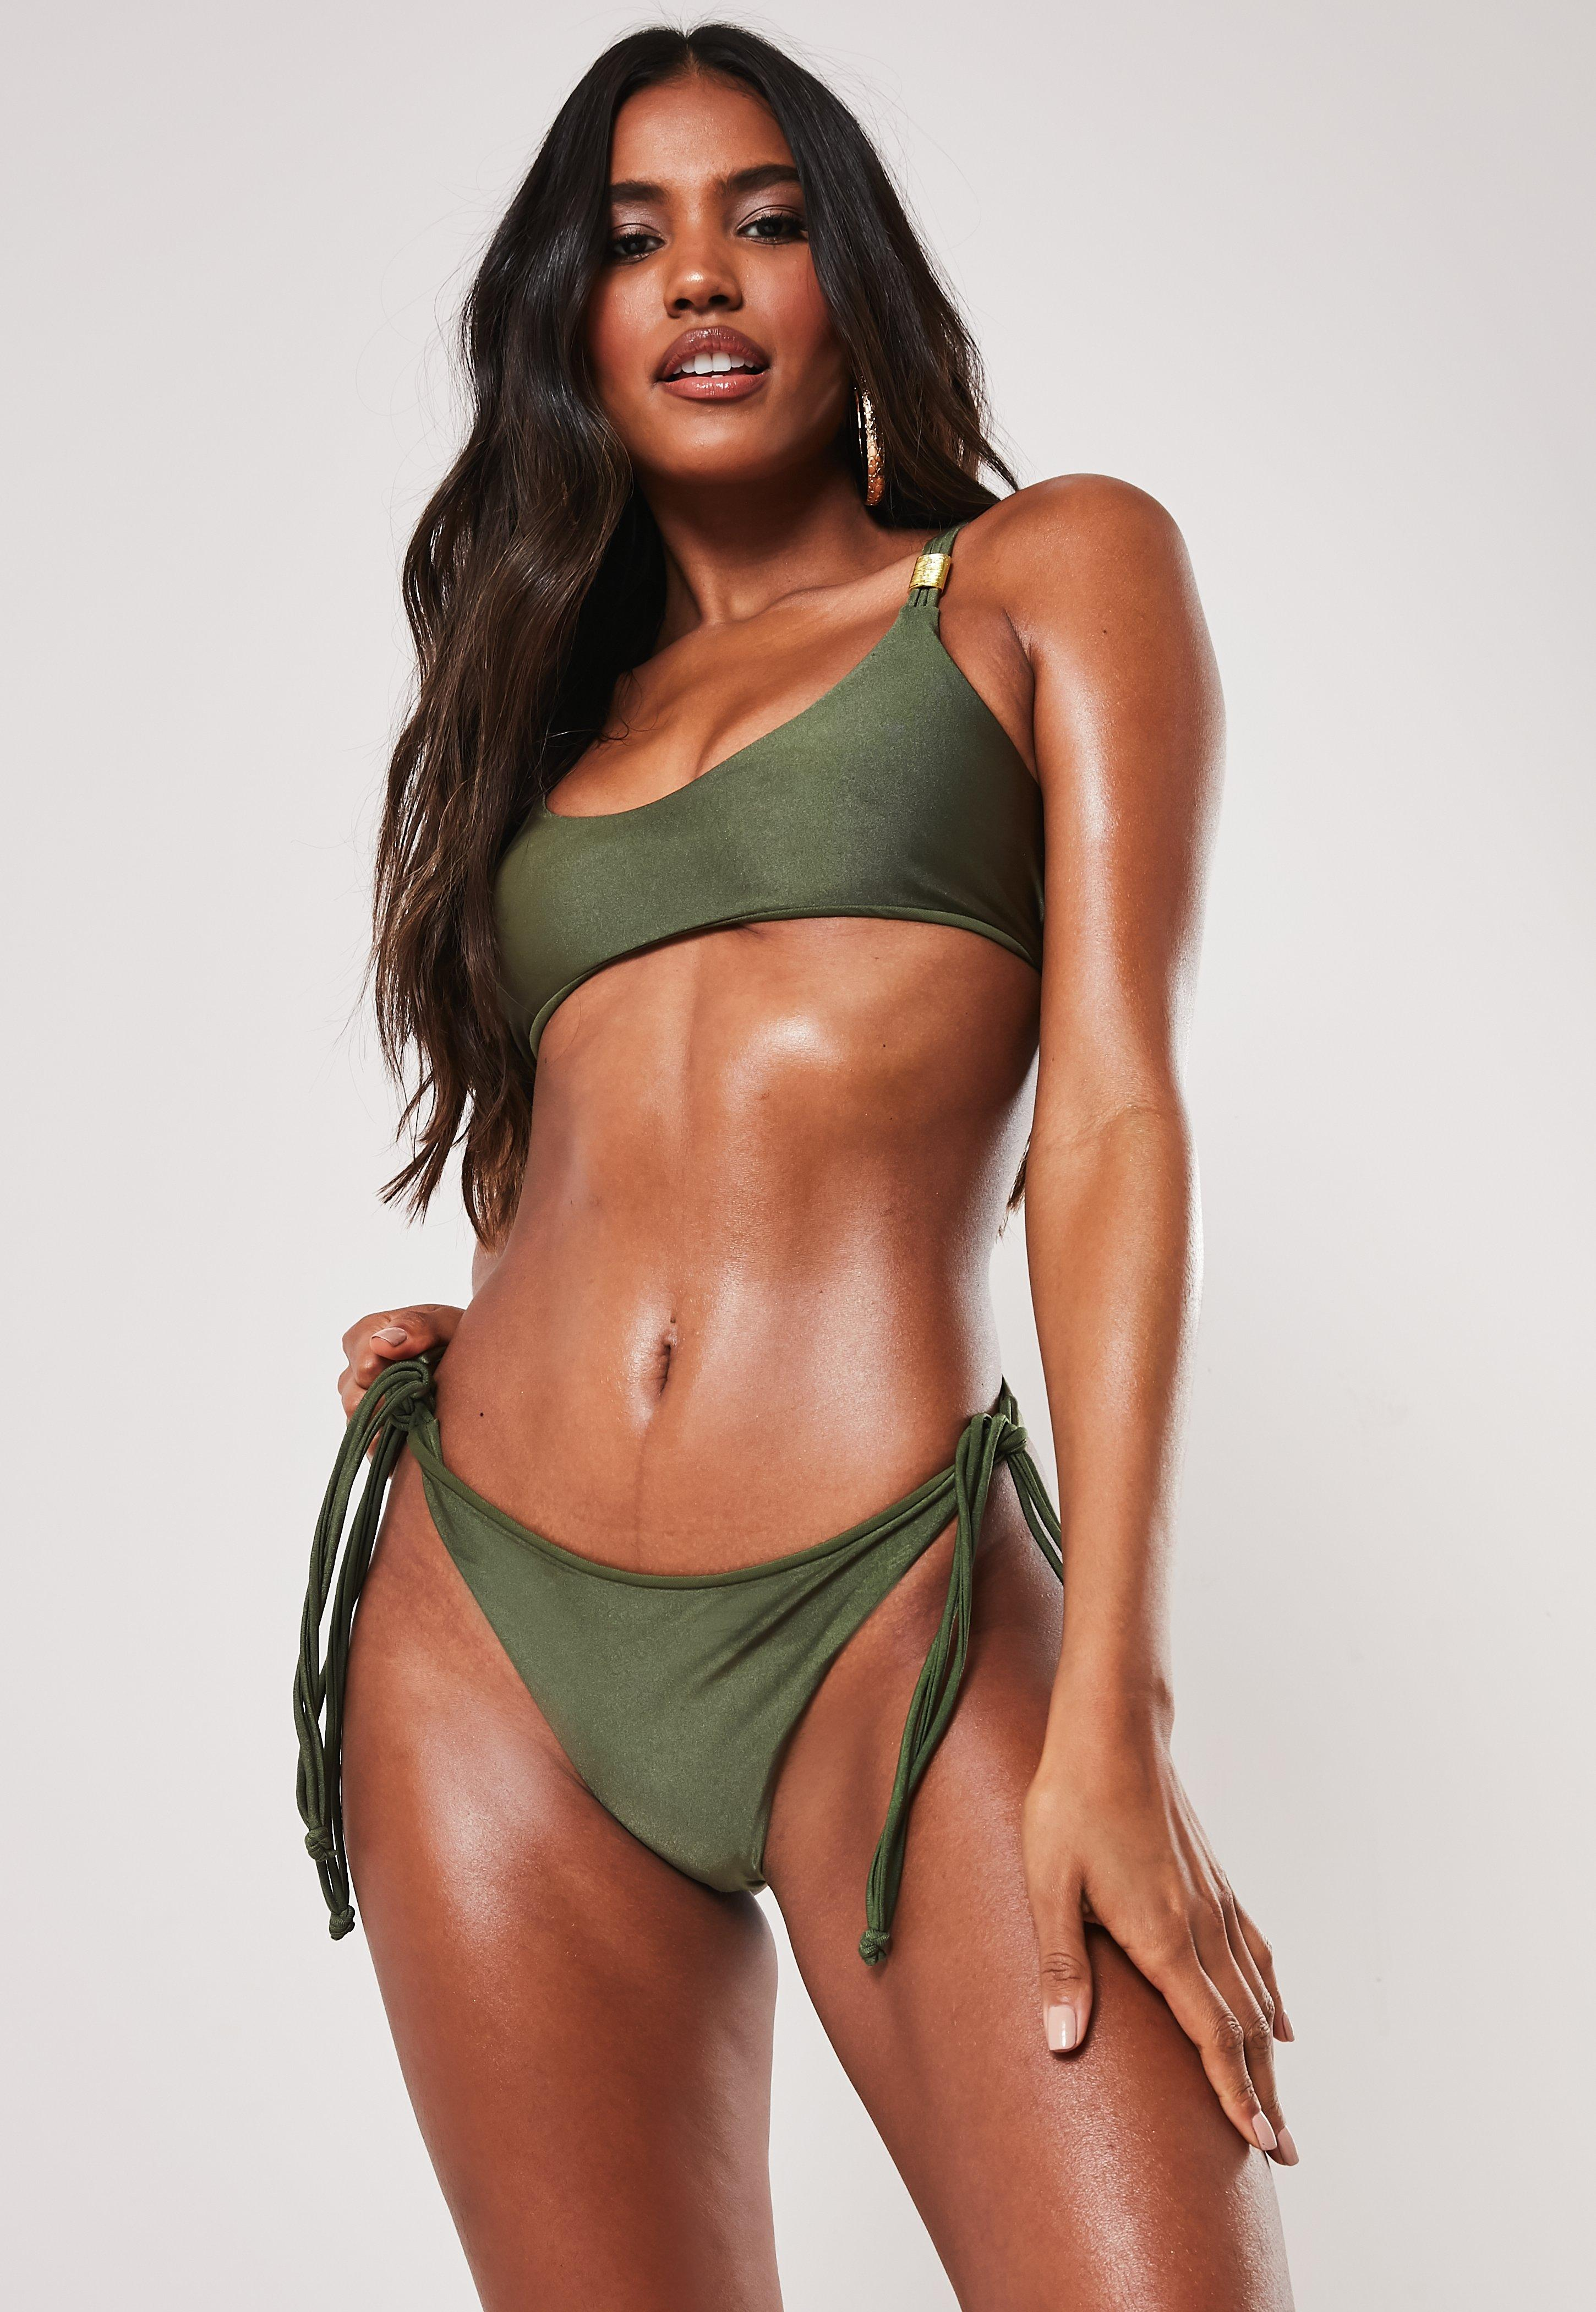 09002d0af5e Swimsuits Women's - One & Two Piece Swimsuits - Missguided